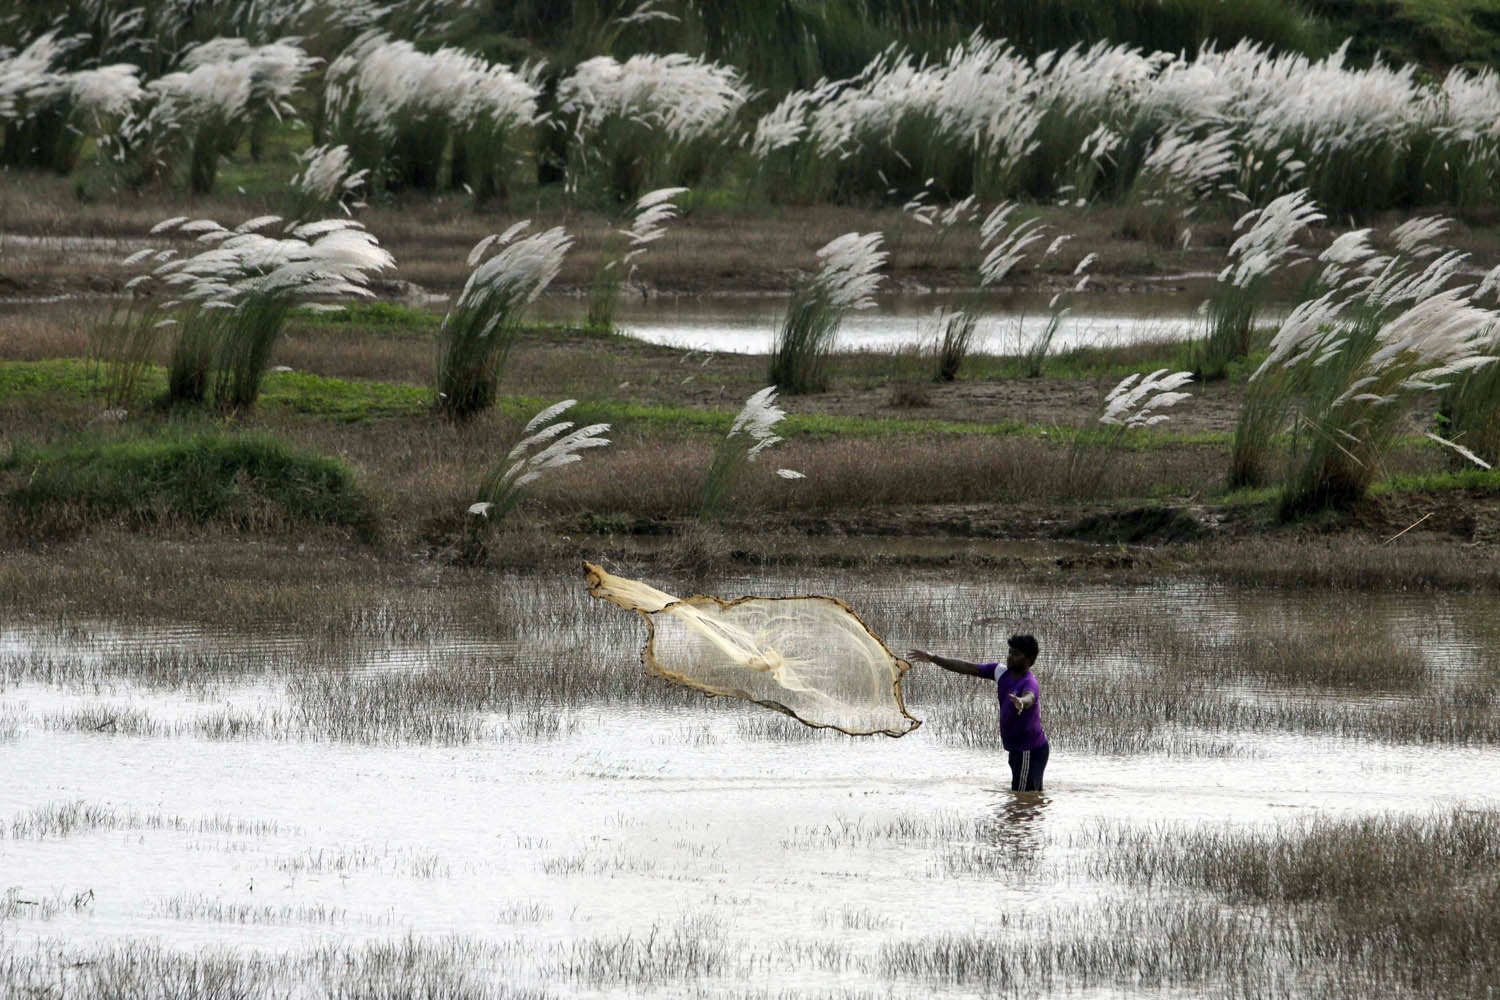 Sept. 21, 2013. A villager throws his fishing net into giant rainwater puddles on the banks of the Kuakhai River on the outskirts of Bhubaneswar, India.